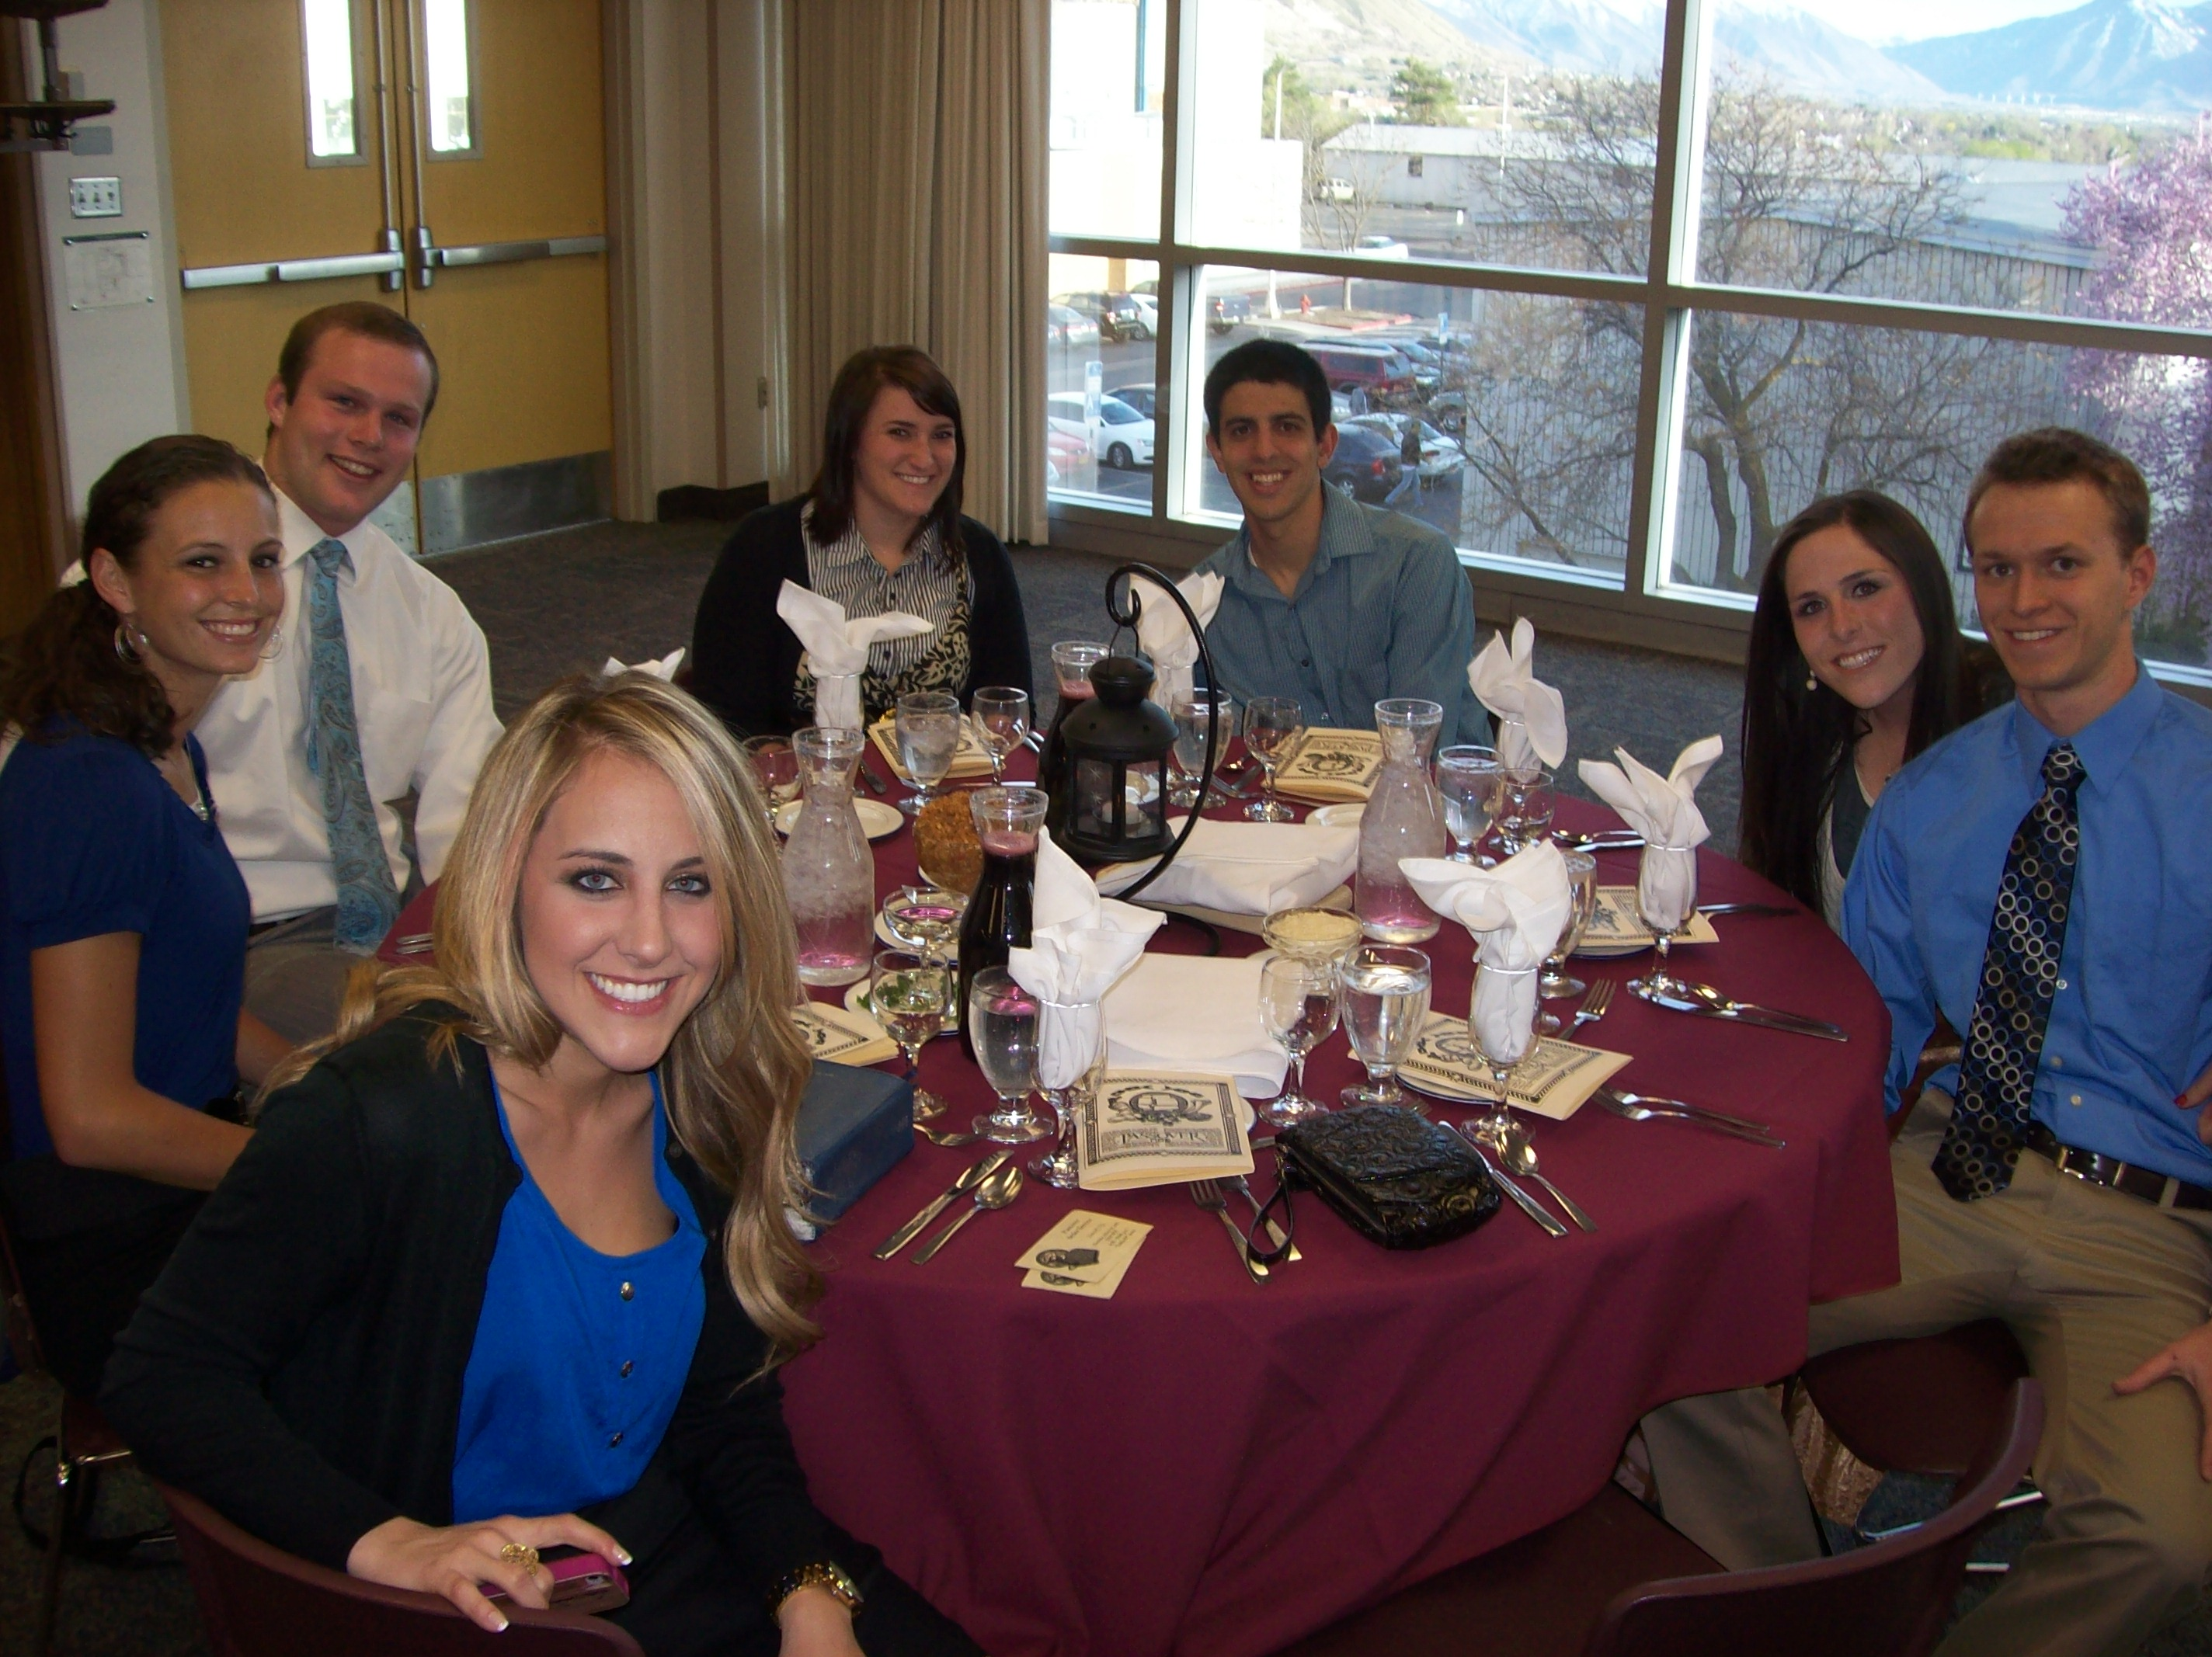 BYU Passover banquet table and guests. Photo complement of Jeffery Chadwick.